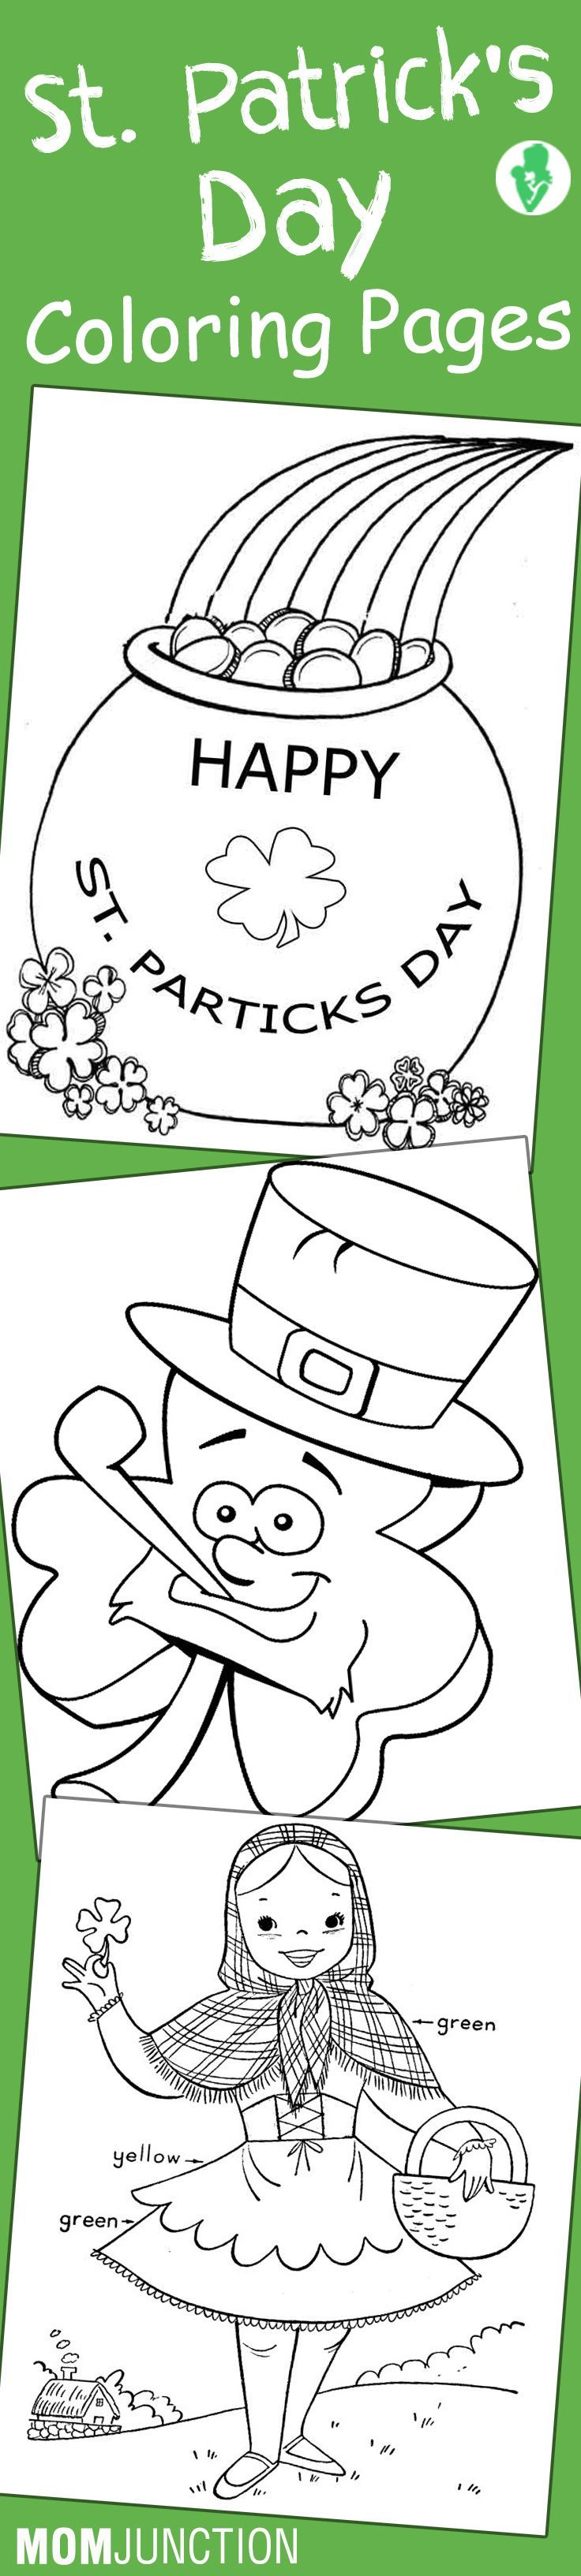 Top 25 Free Printable St. Patrick\'s Day Coloring Pages Online | Kind